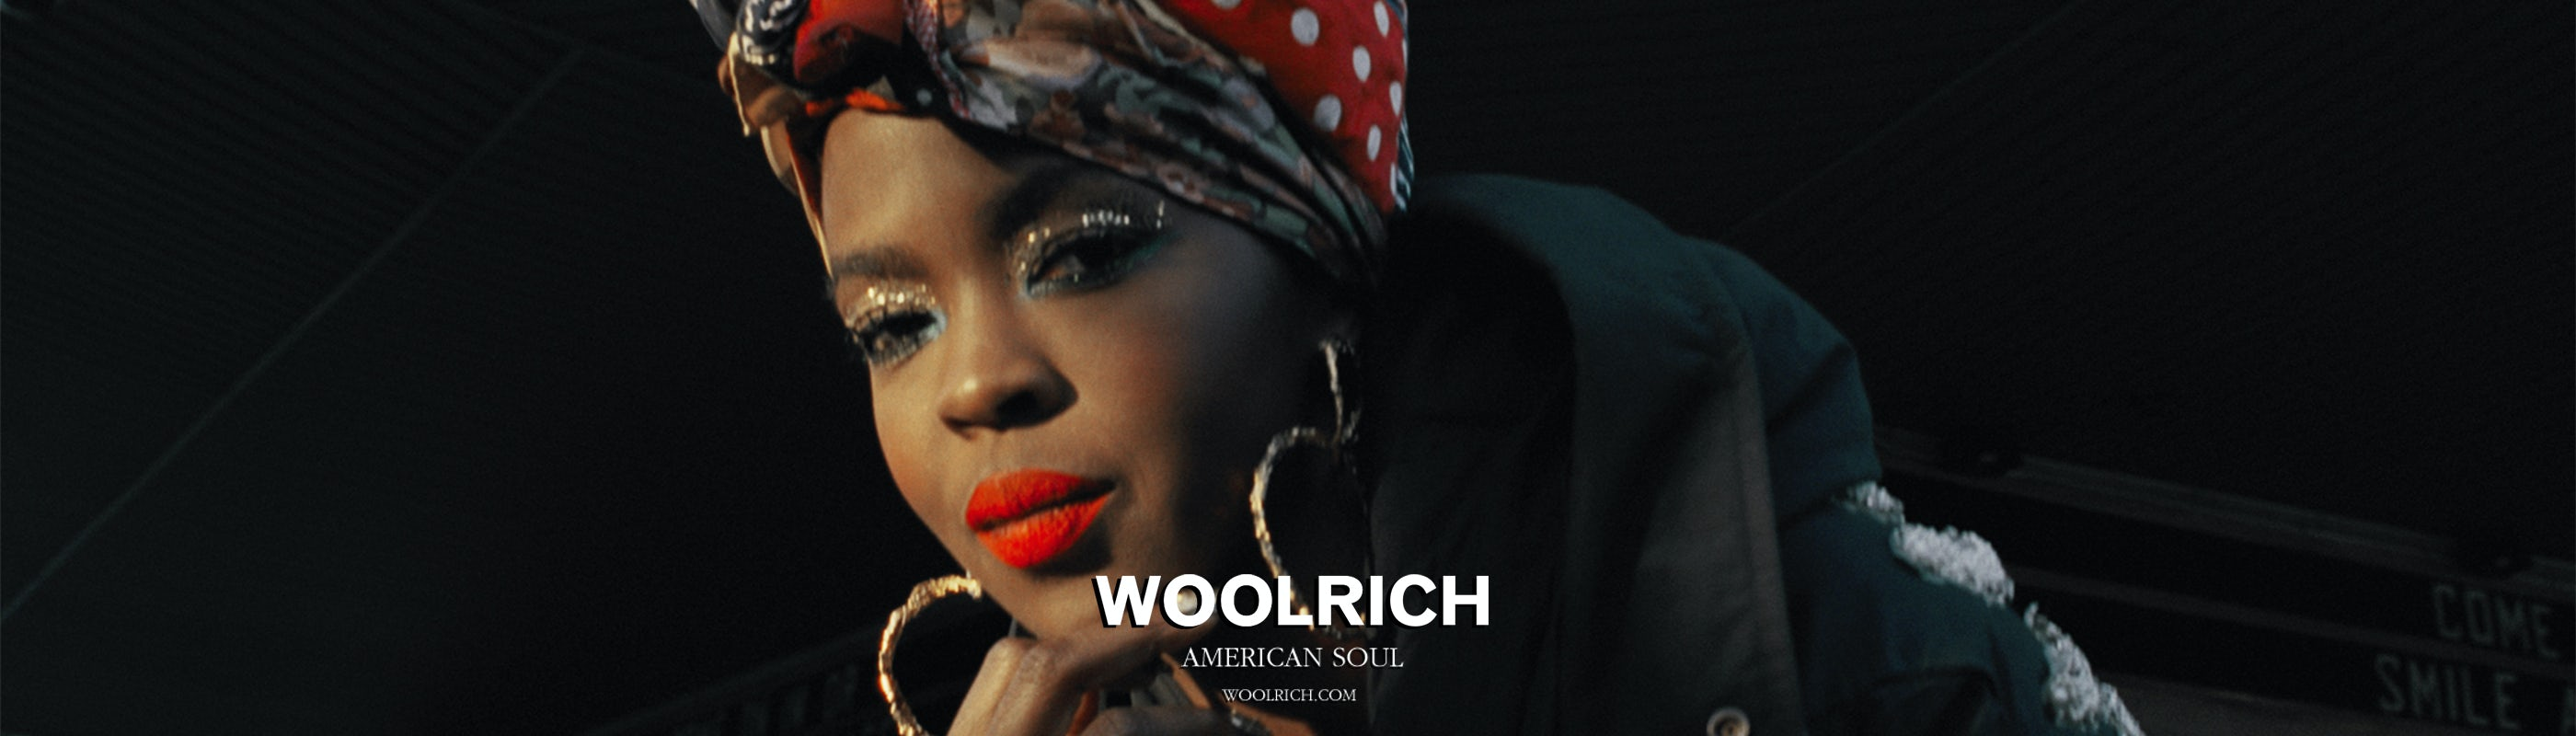 Profile image for Woolrich